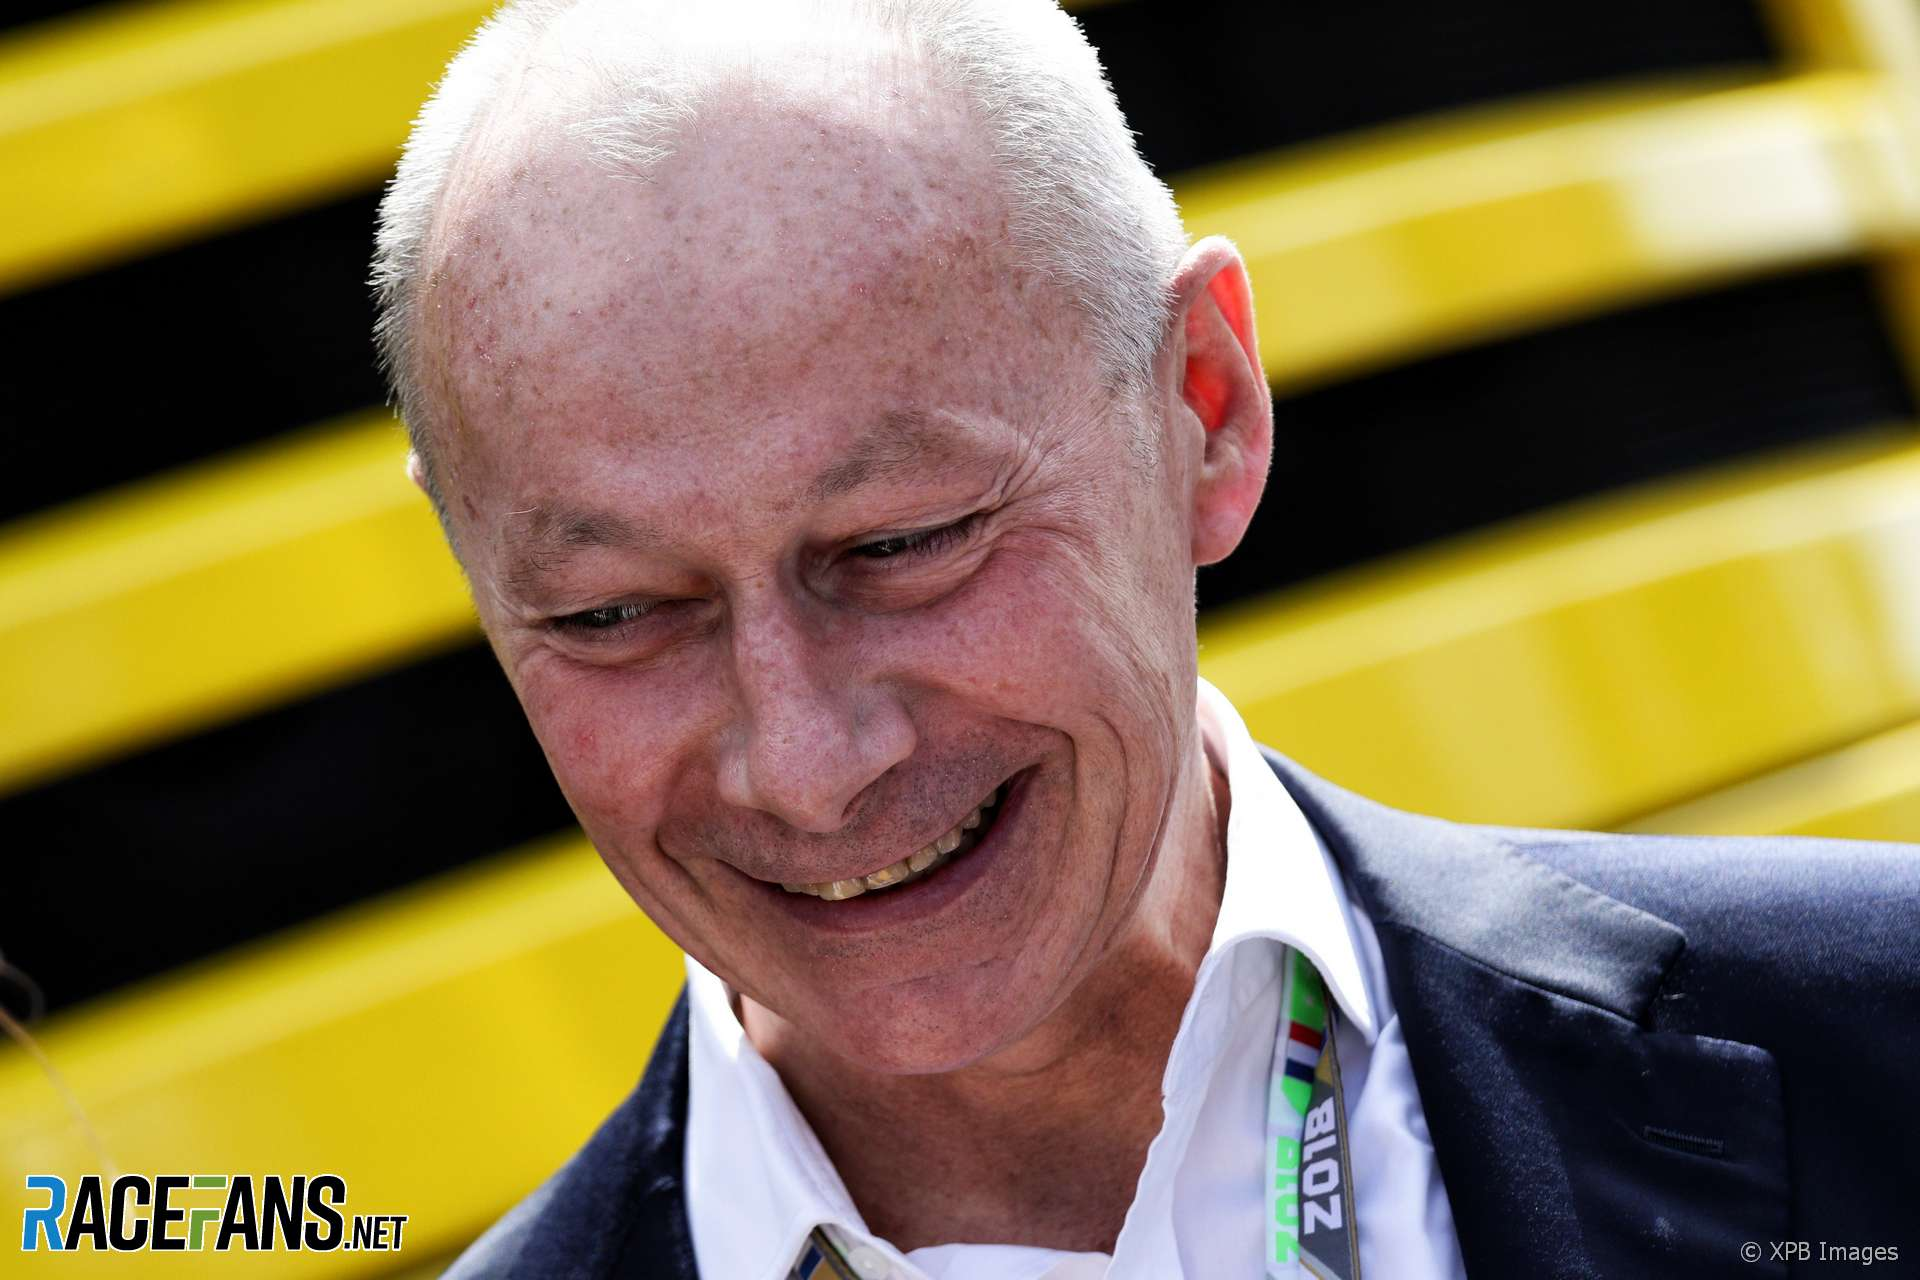 Thierry Bollore, Renault, Paul Ricard, 2018